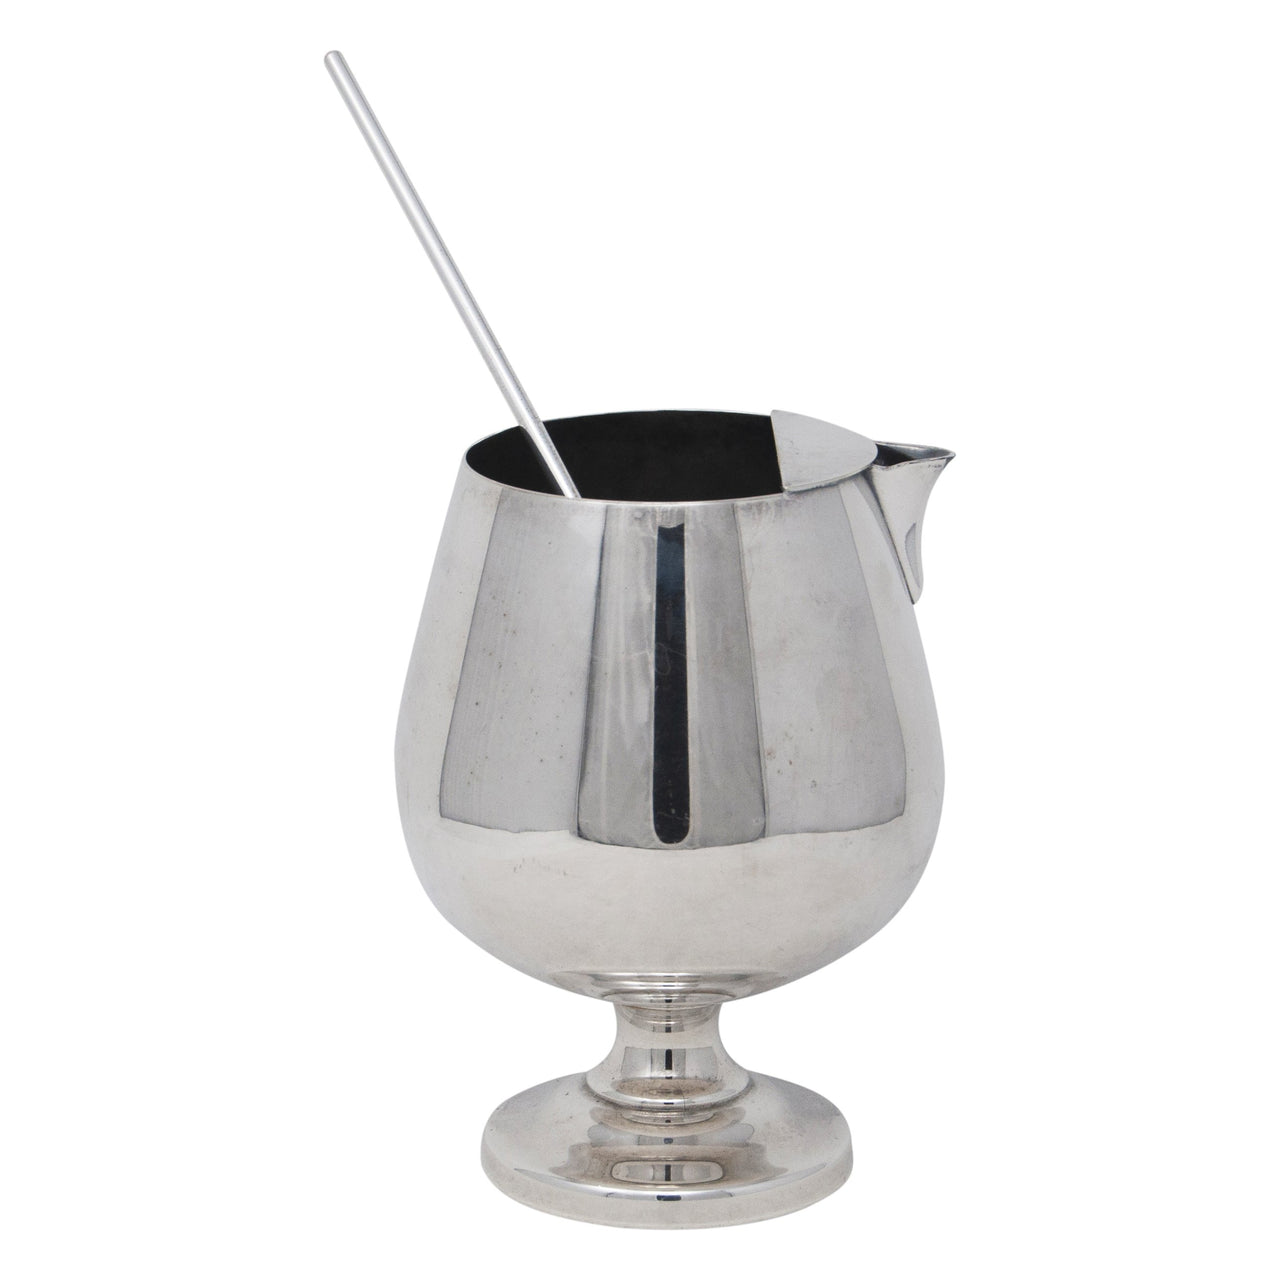 Vintage Poole Silver Plate Cocktail Pitcher & Stirrer | The Hour Shop